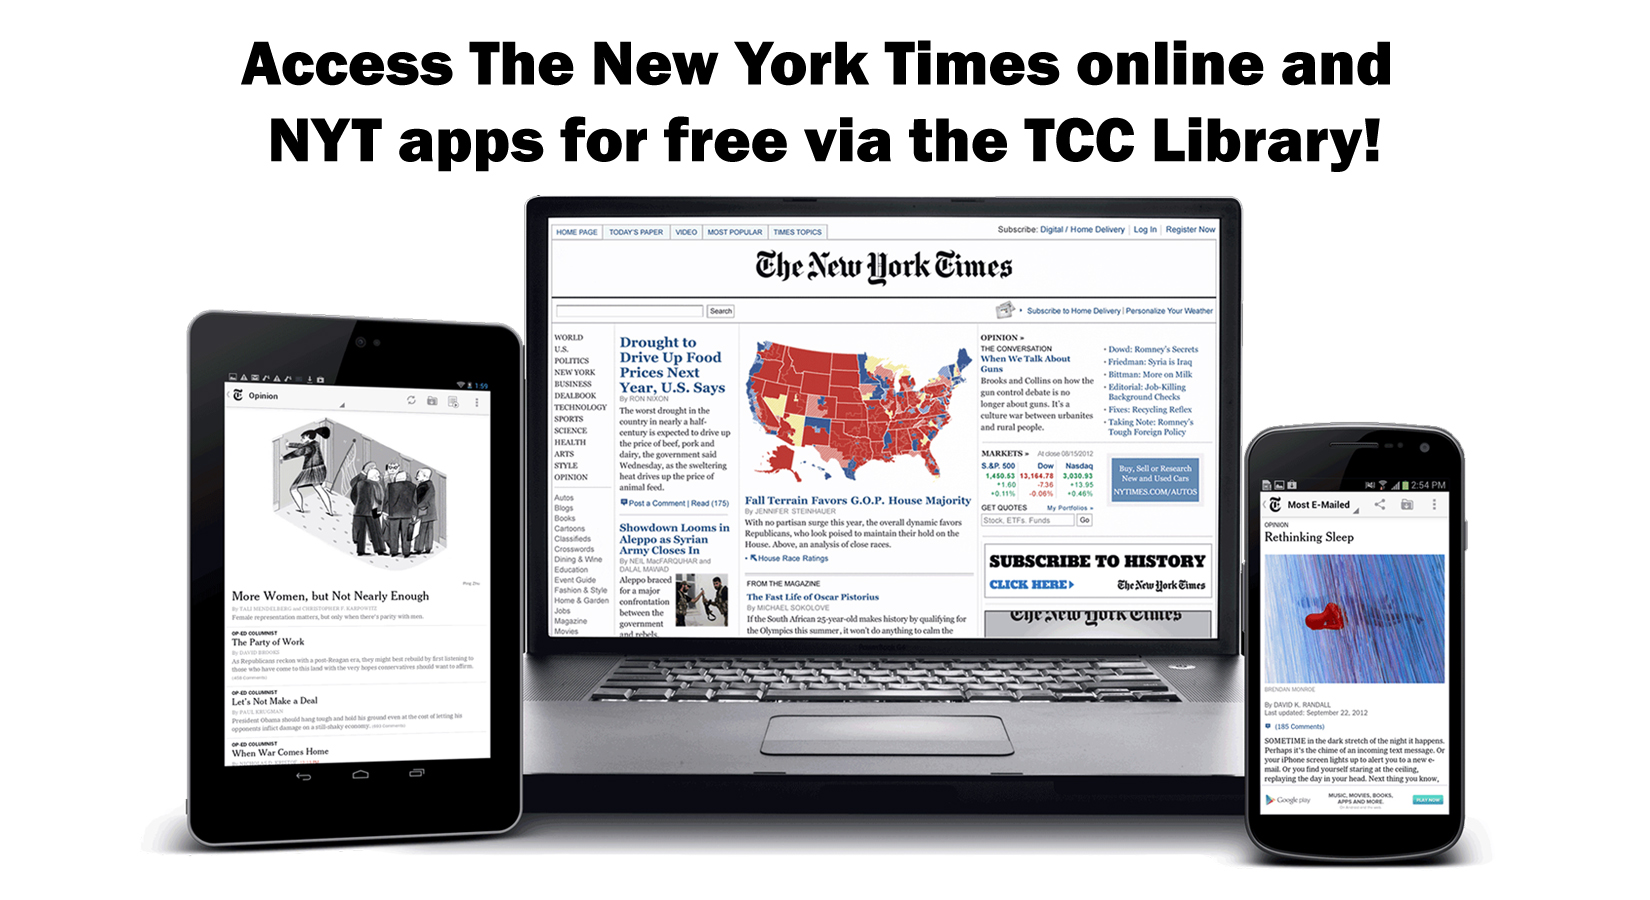 access the new york times online and NYT apps for free via the tcc library